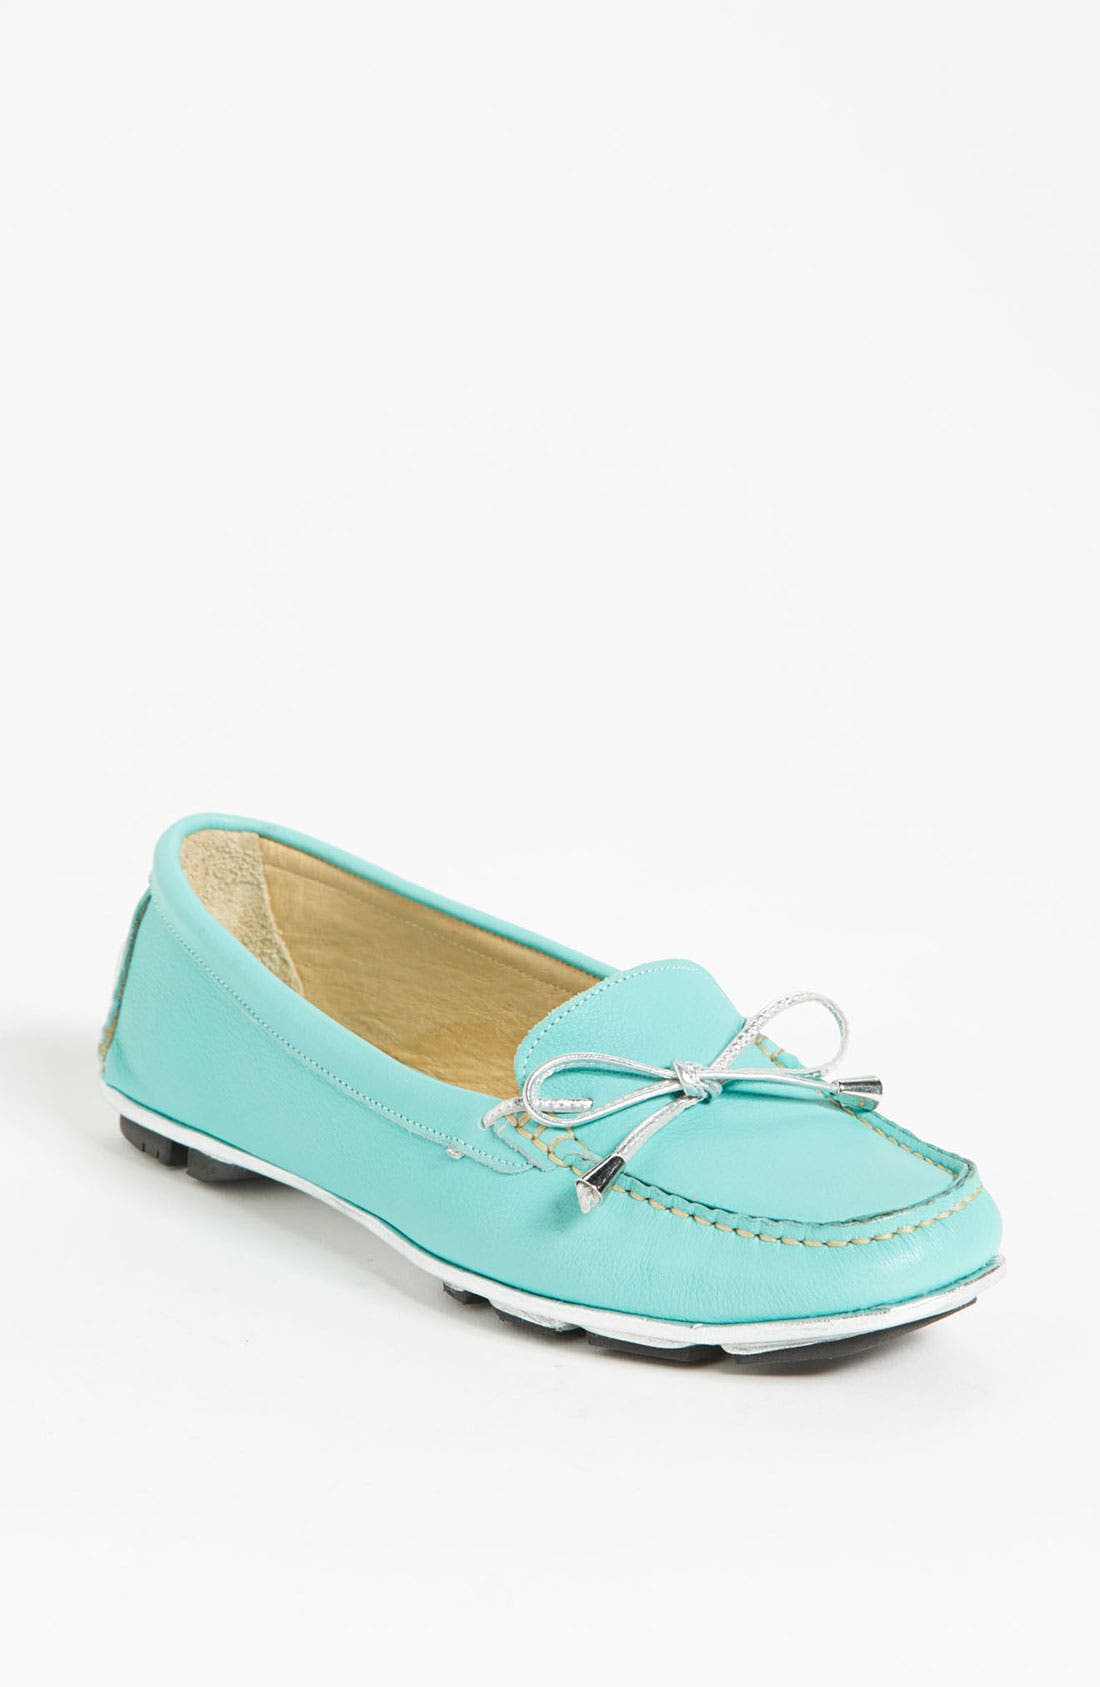 Alternate Image 1 Selected - Ron White 'Lena' Loafer